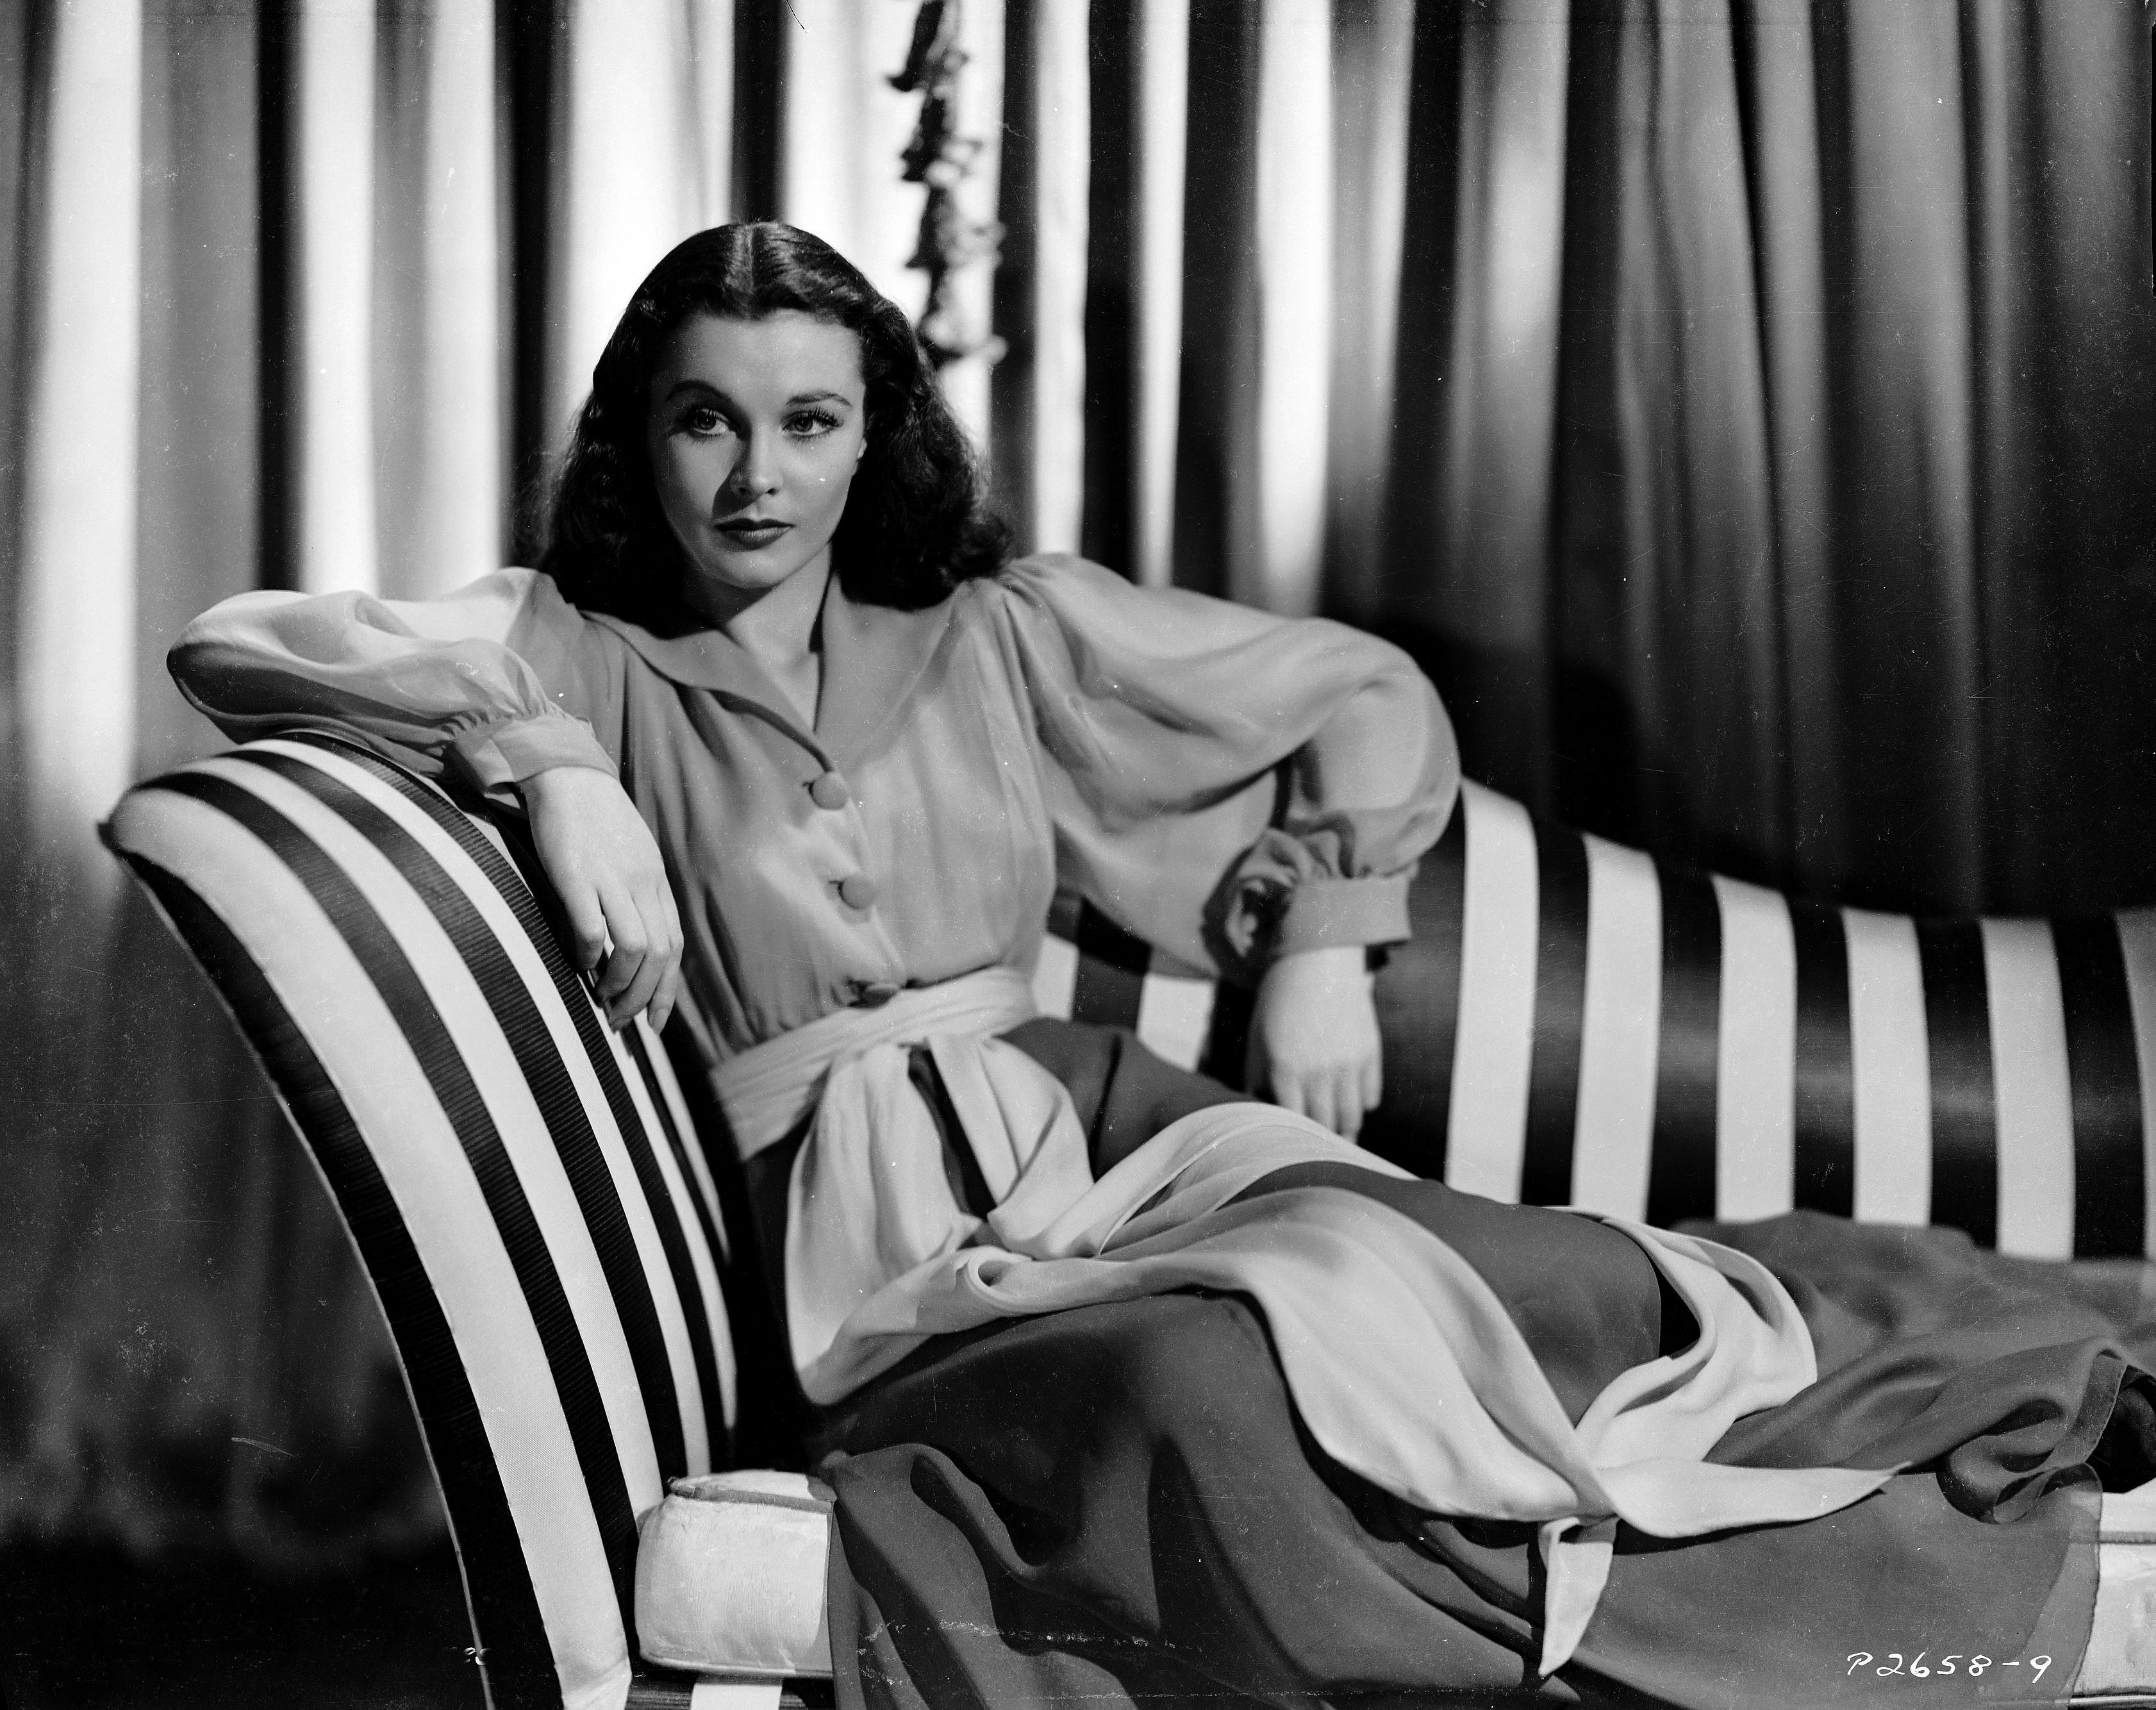 Pin by Brenna Heskett on Vintage Hollywood | Vivien leigh, Movies ...